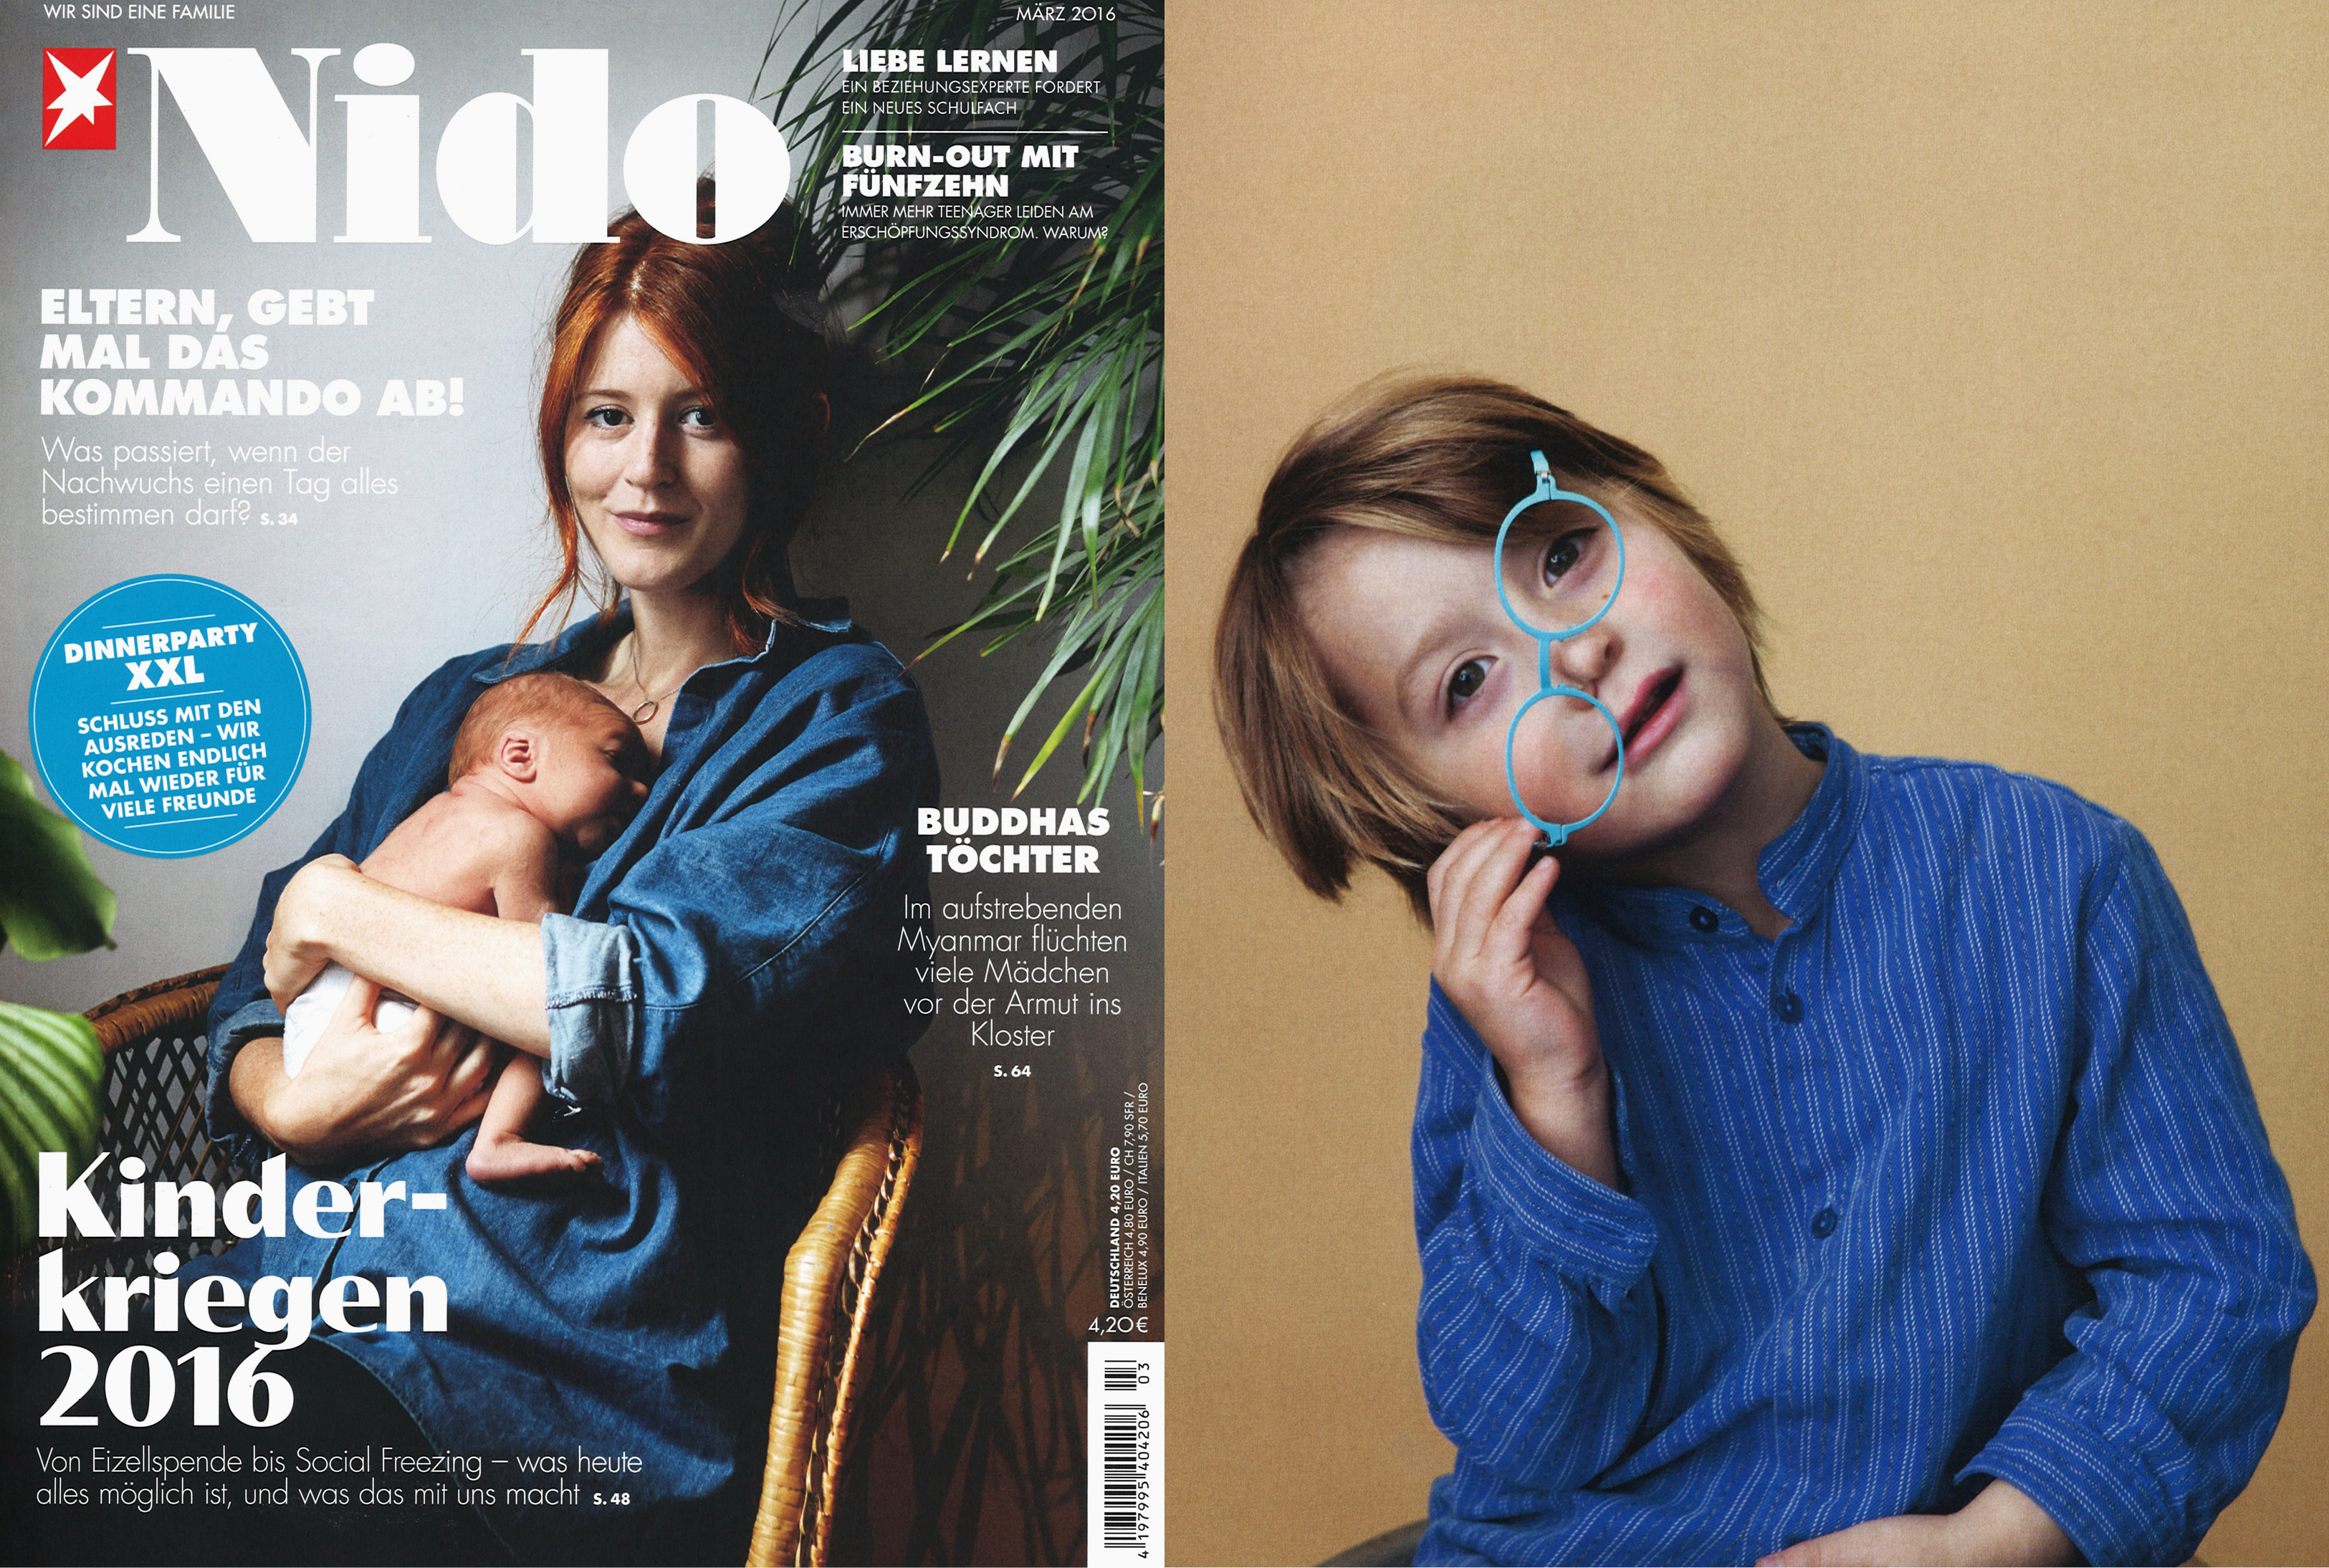 MYKITA FIRST glasses FLAMINGO featured in Nido Germany